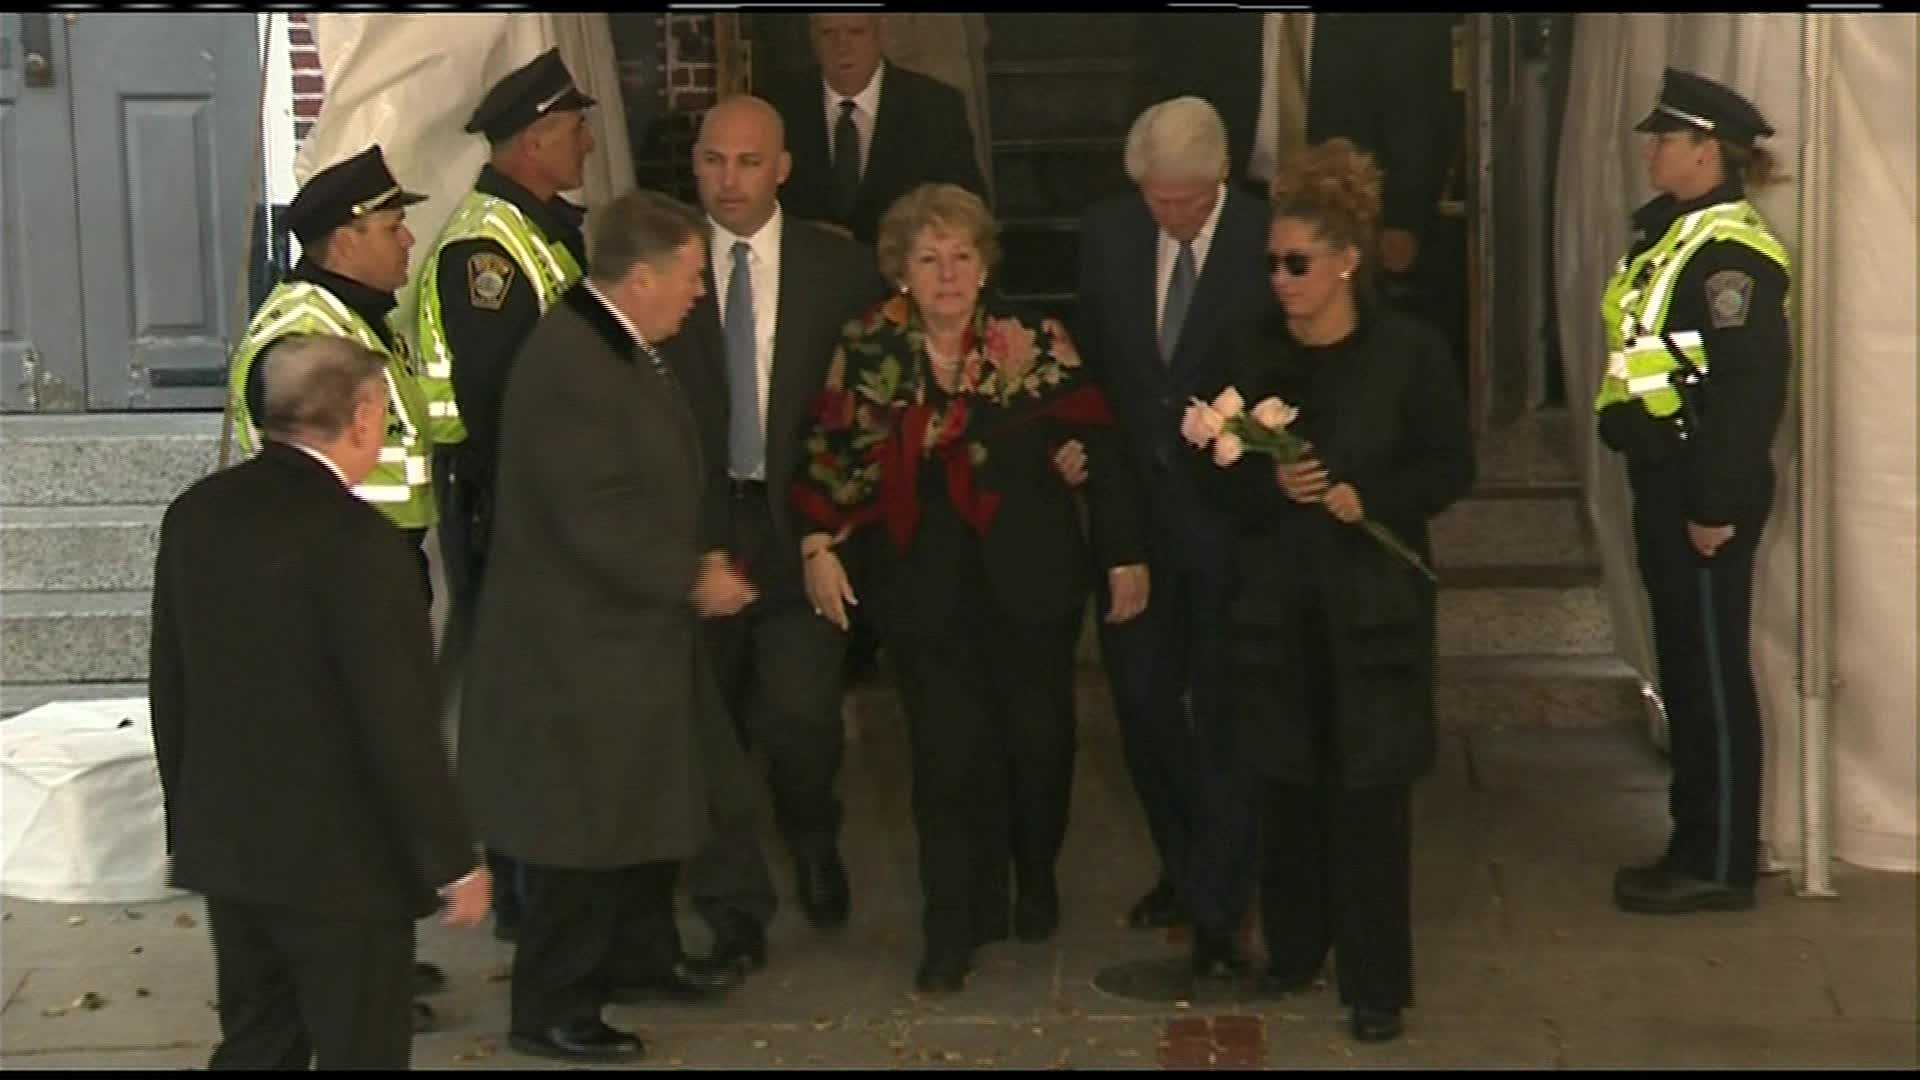 President Clinton escorts the Menino family out of Faneuil Hall.